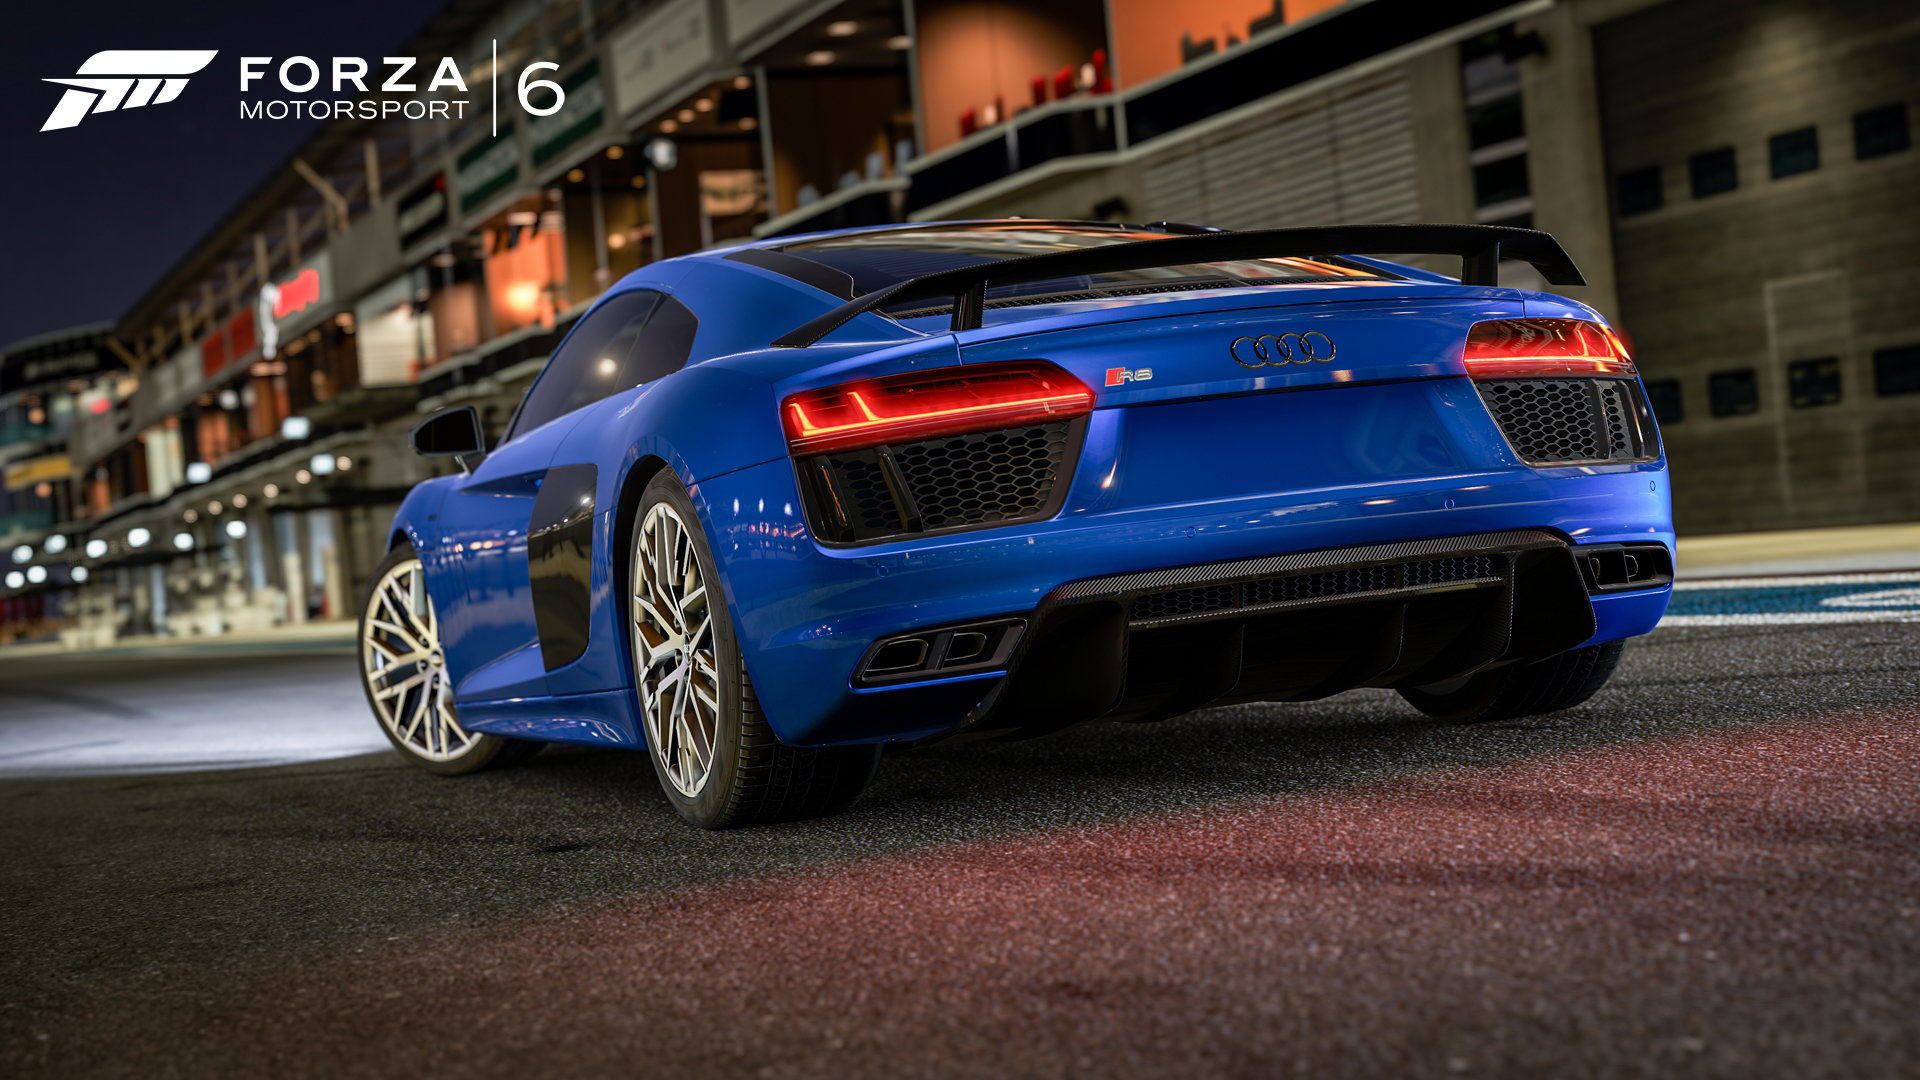 Free Download Forza Motorsport 6 Wallpaper ID131862 Full Hd 1920x1080 For Computer